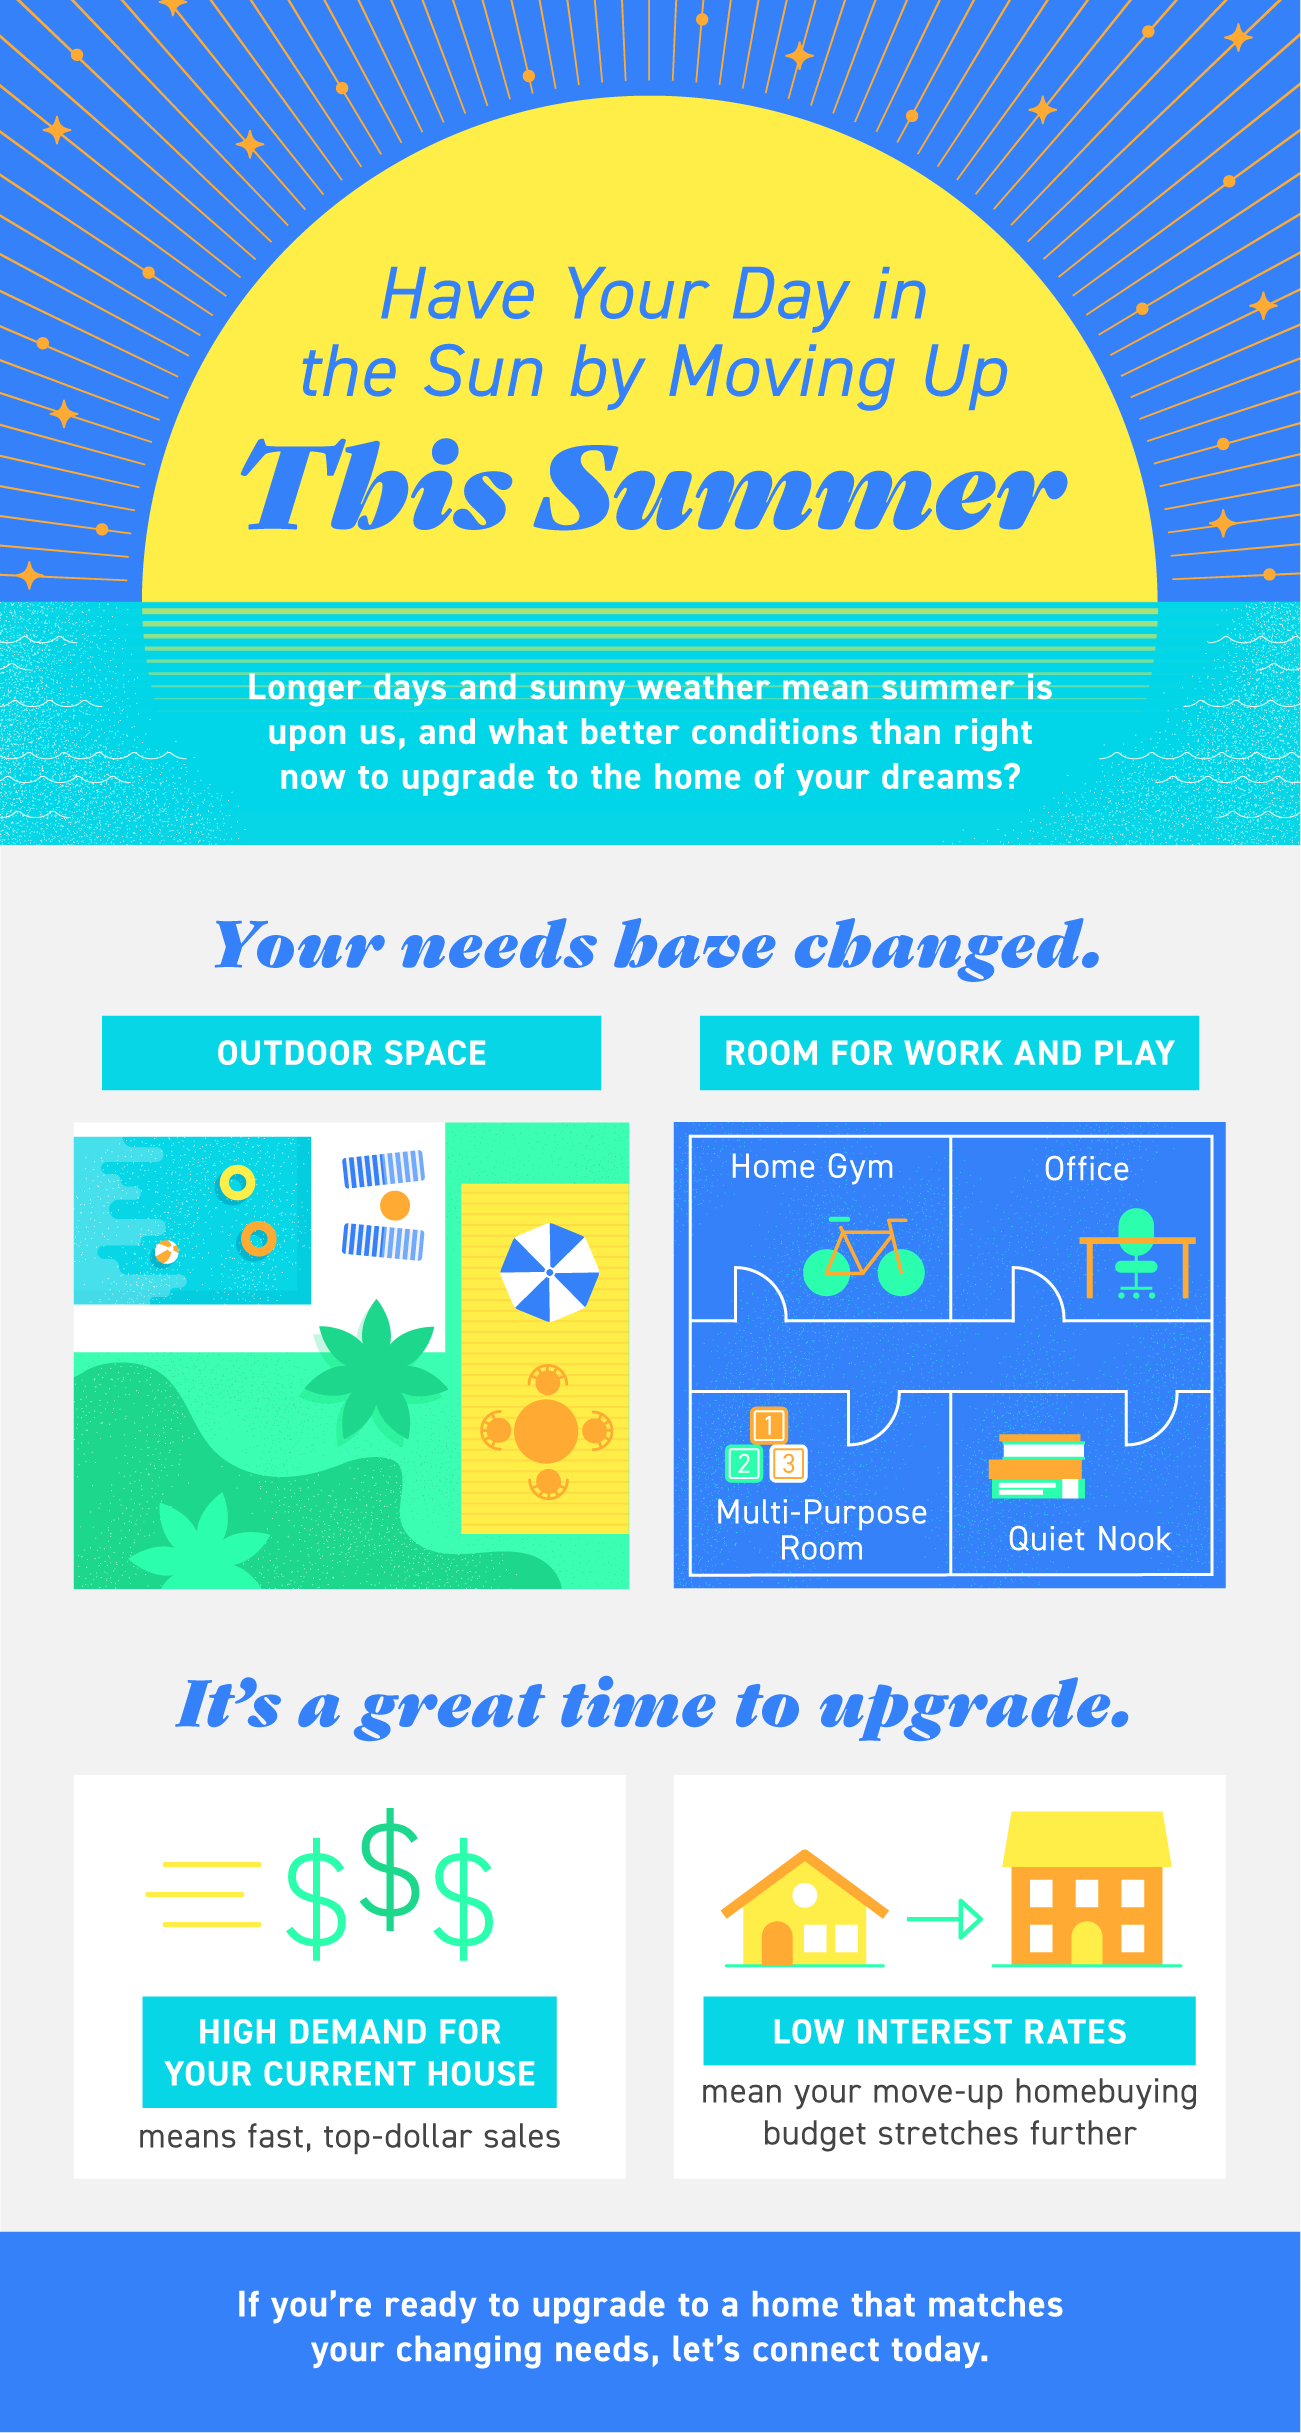 Have Your Day in the Sun by Moving Up This Summer [INFOGRAPHIC] | Bridge Builders